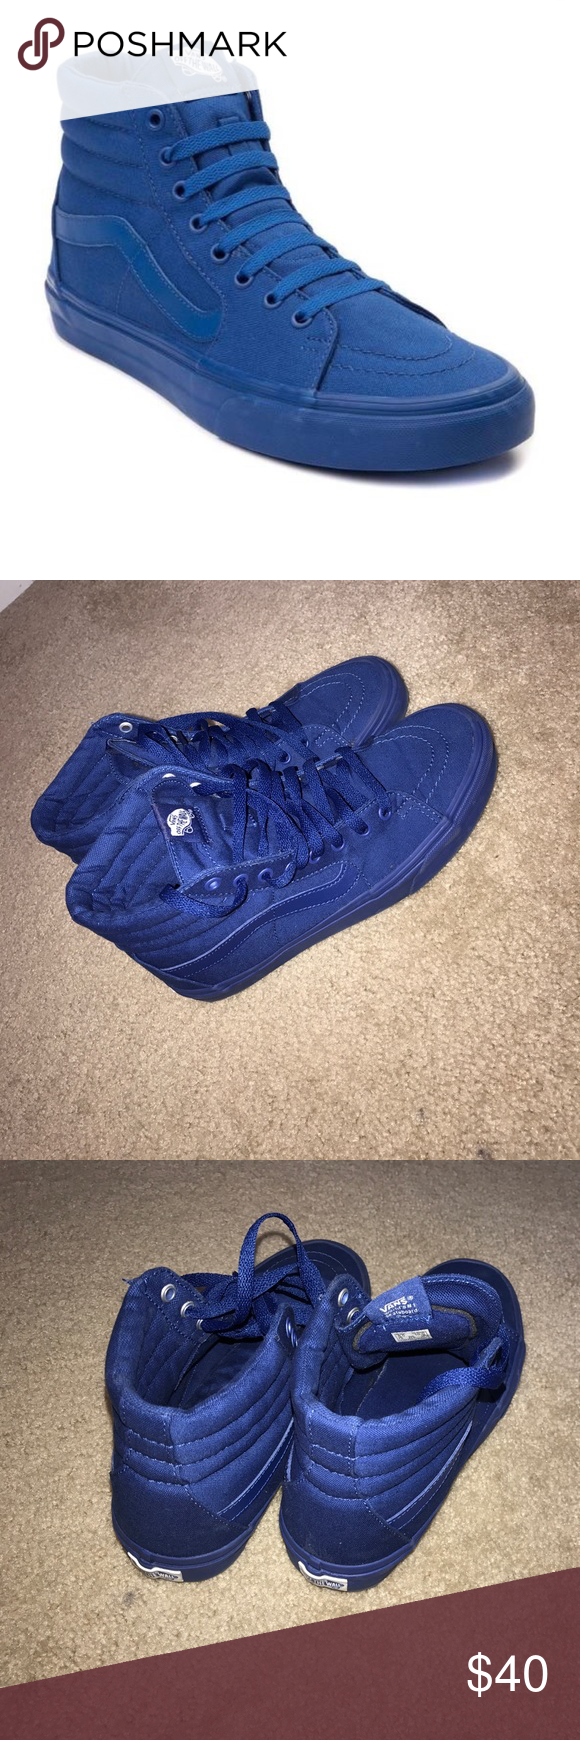 5f9eccafe6 All blue high top vans 9.5 10 condition